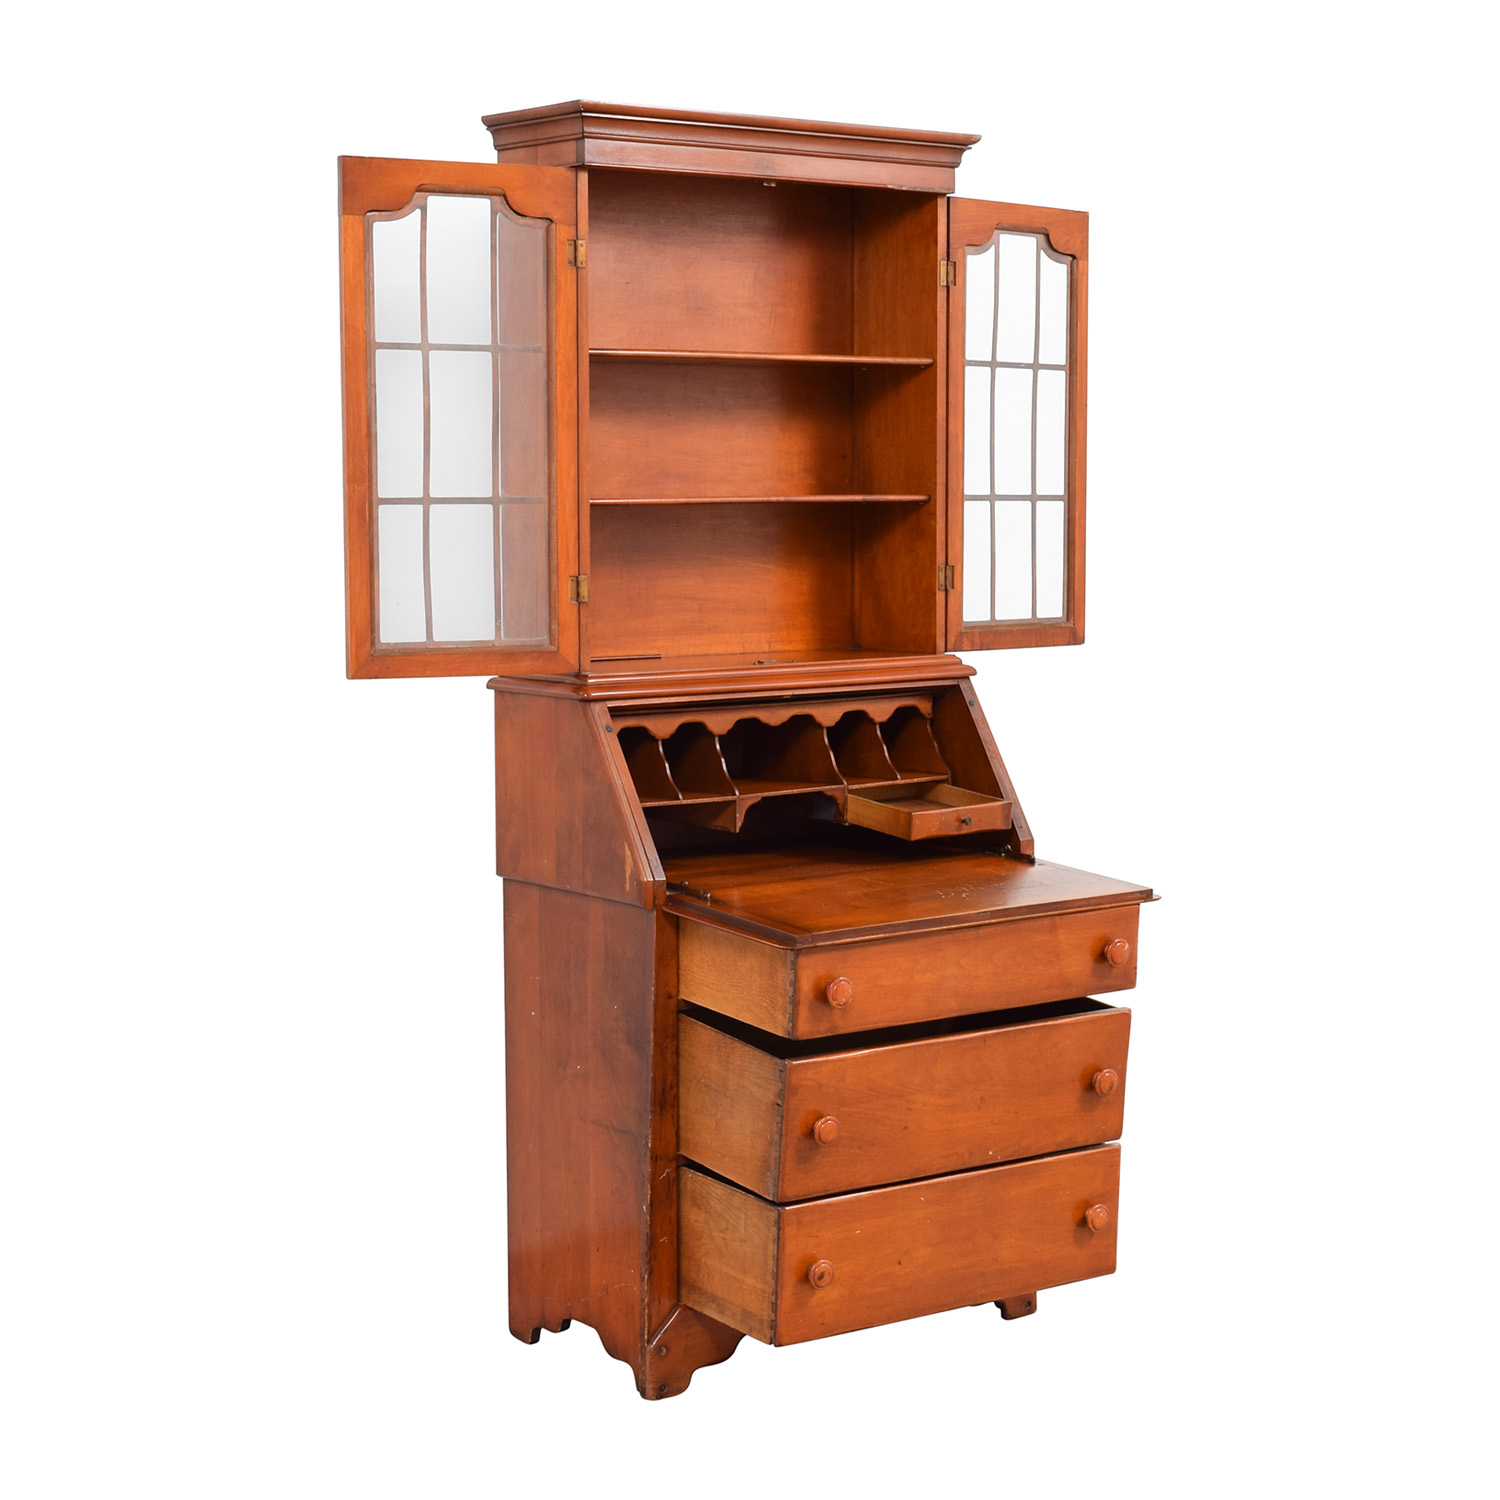 buy Antique Pine Secretary Desk with Pull Out Tray online